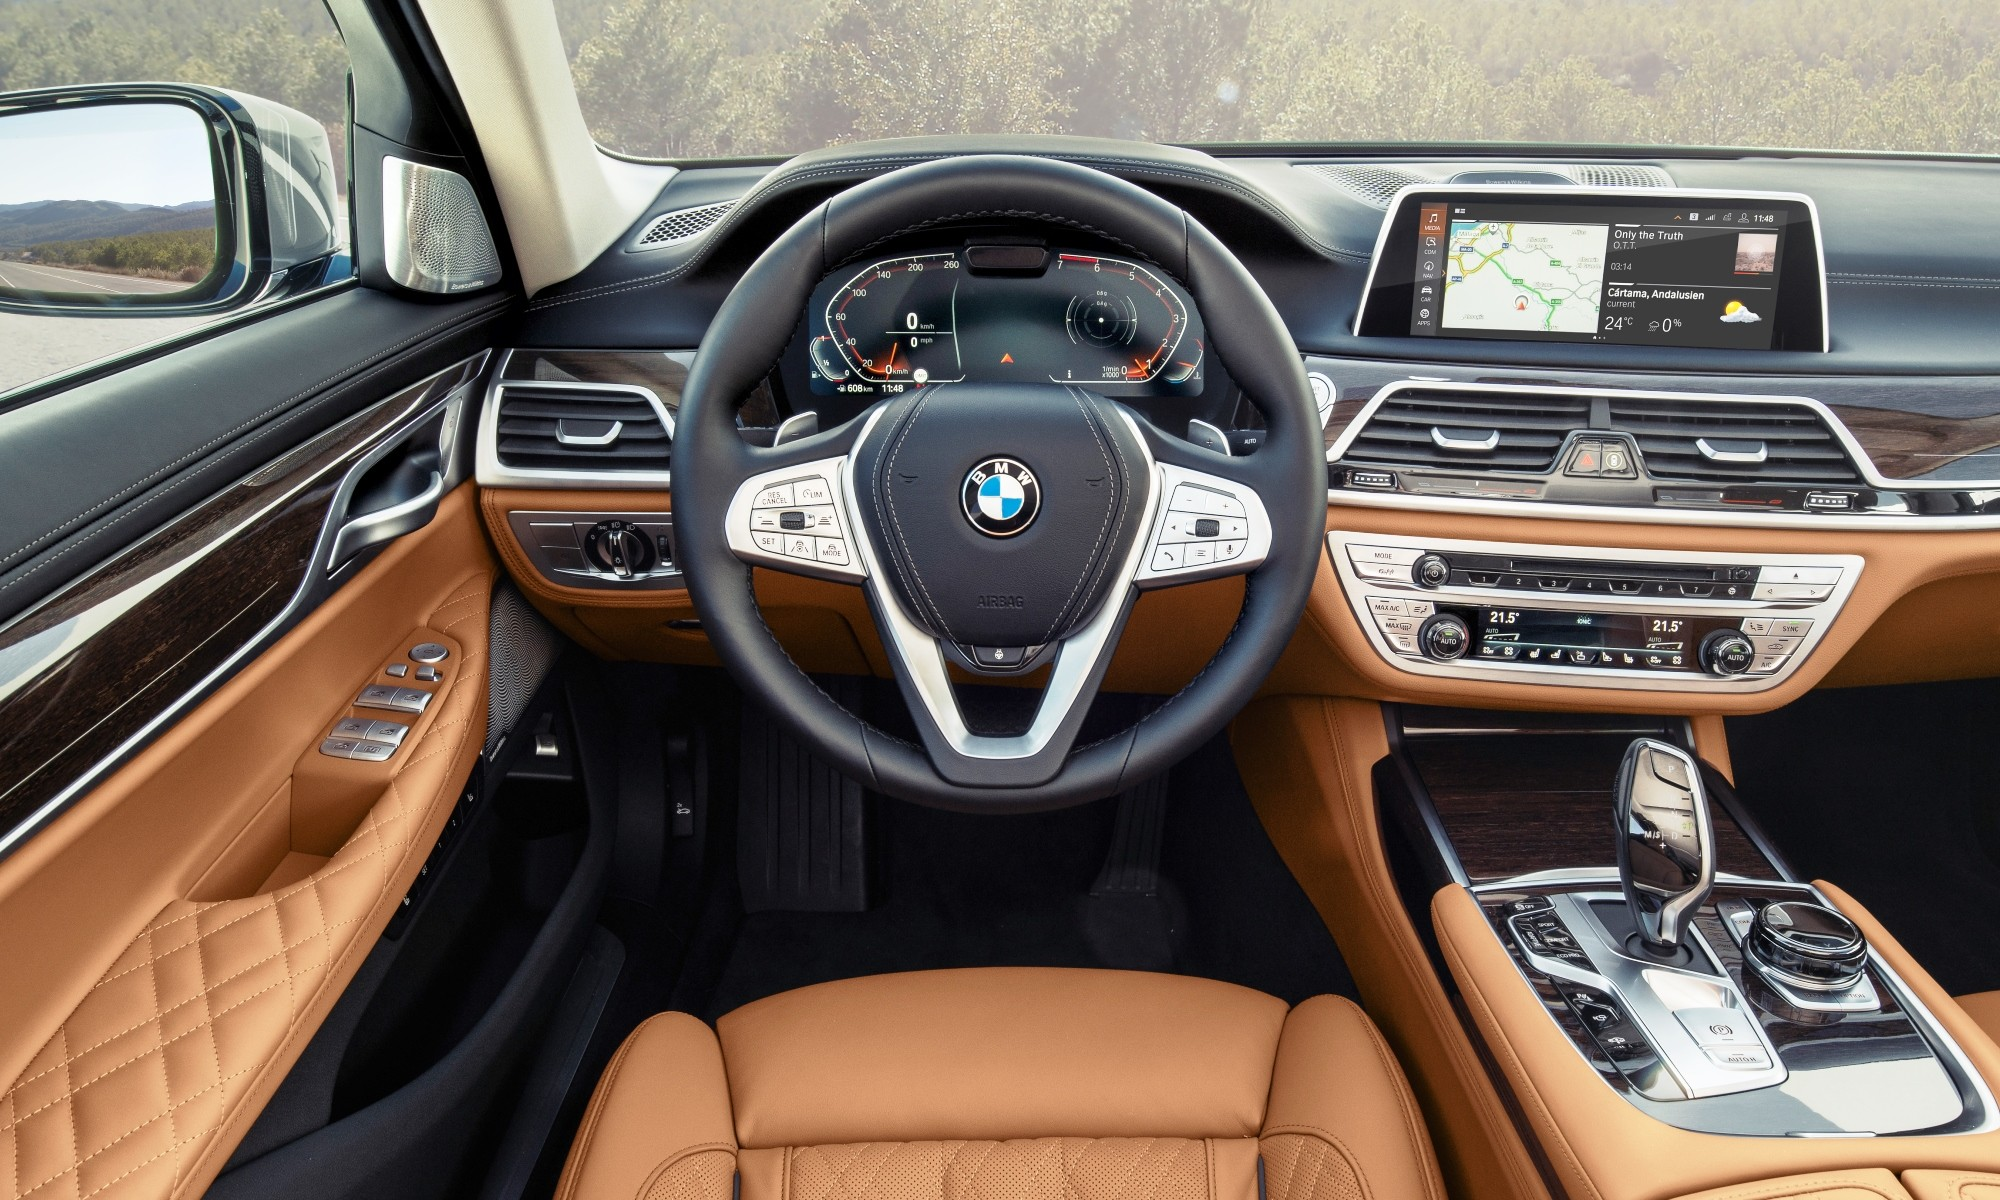 All-new BMW 7 Series interor